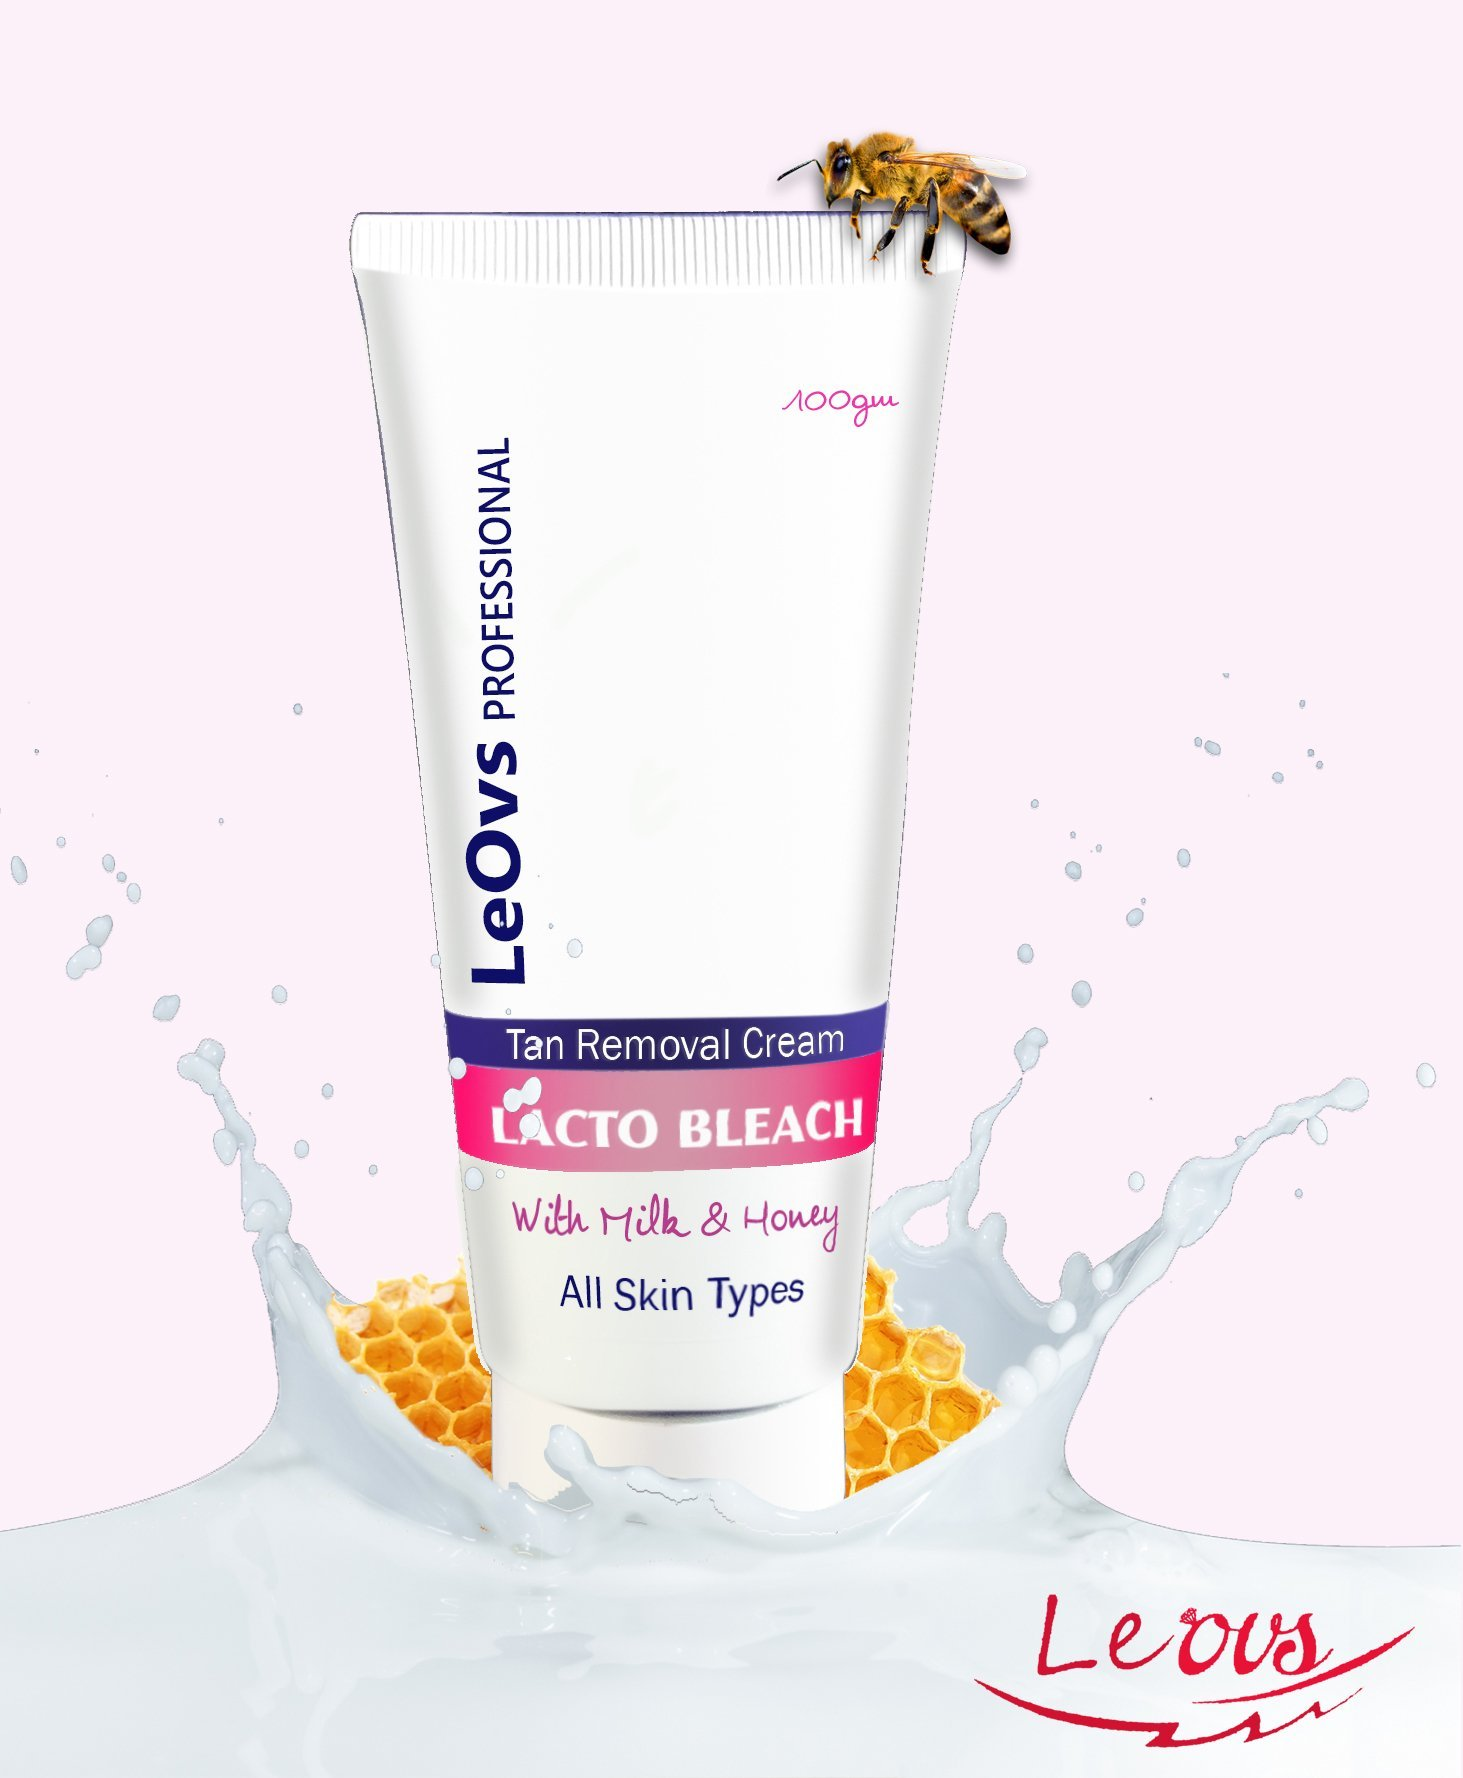 LeOvs Professional Lacto Bleach with Tan Removal and Instant Glow Cream 100 Gm product image